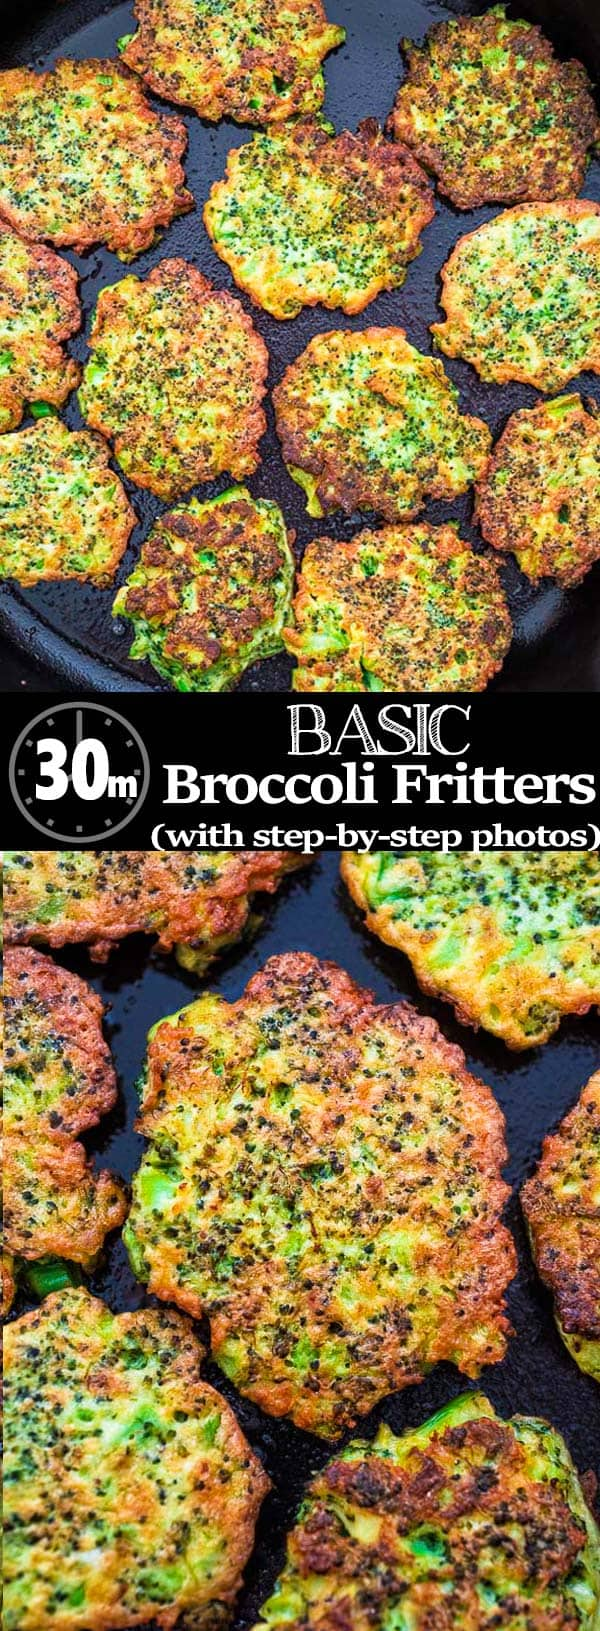 These light, golden-brown Broccoli Frittersmake a delicious vegetarian dinner or lunch — and kids love them, too! Ready in less than 30 minutes.❤ COOKTORIA.COM